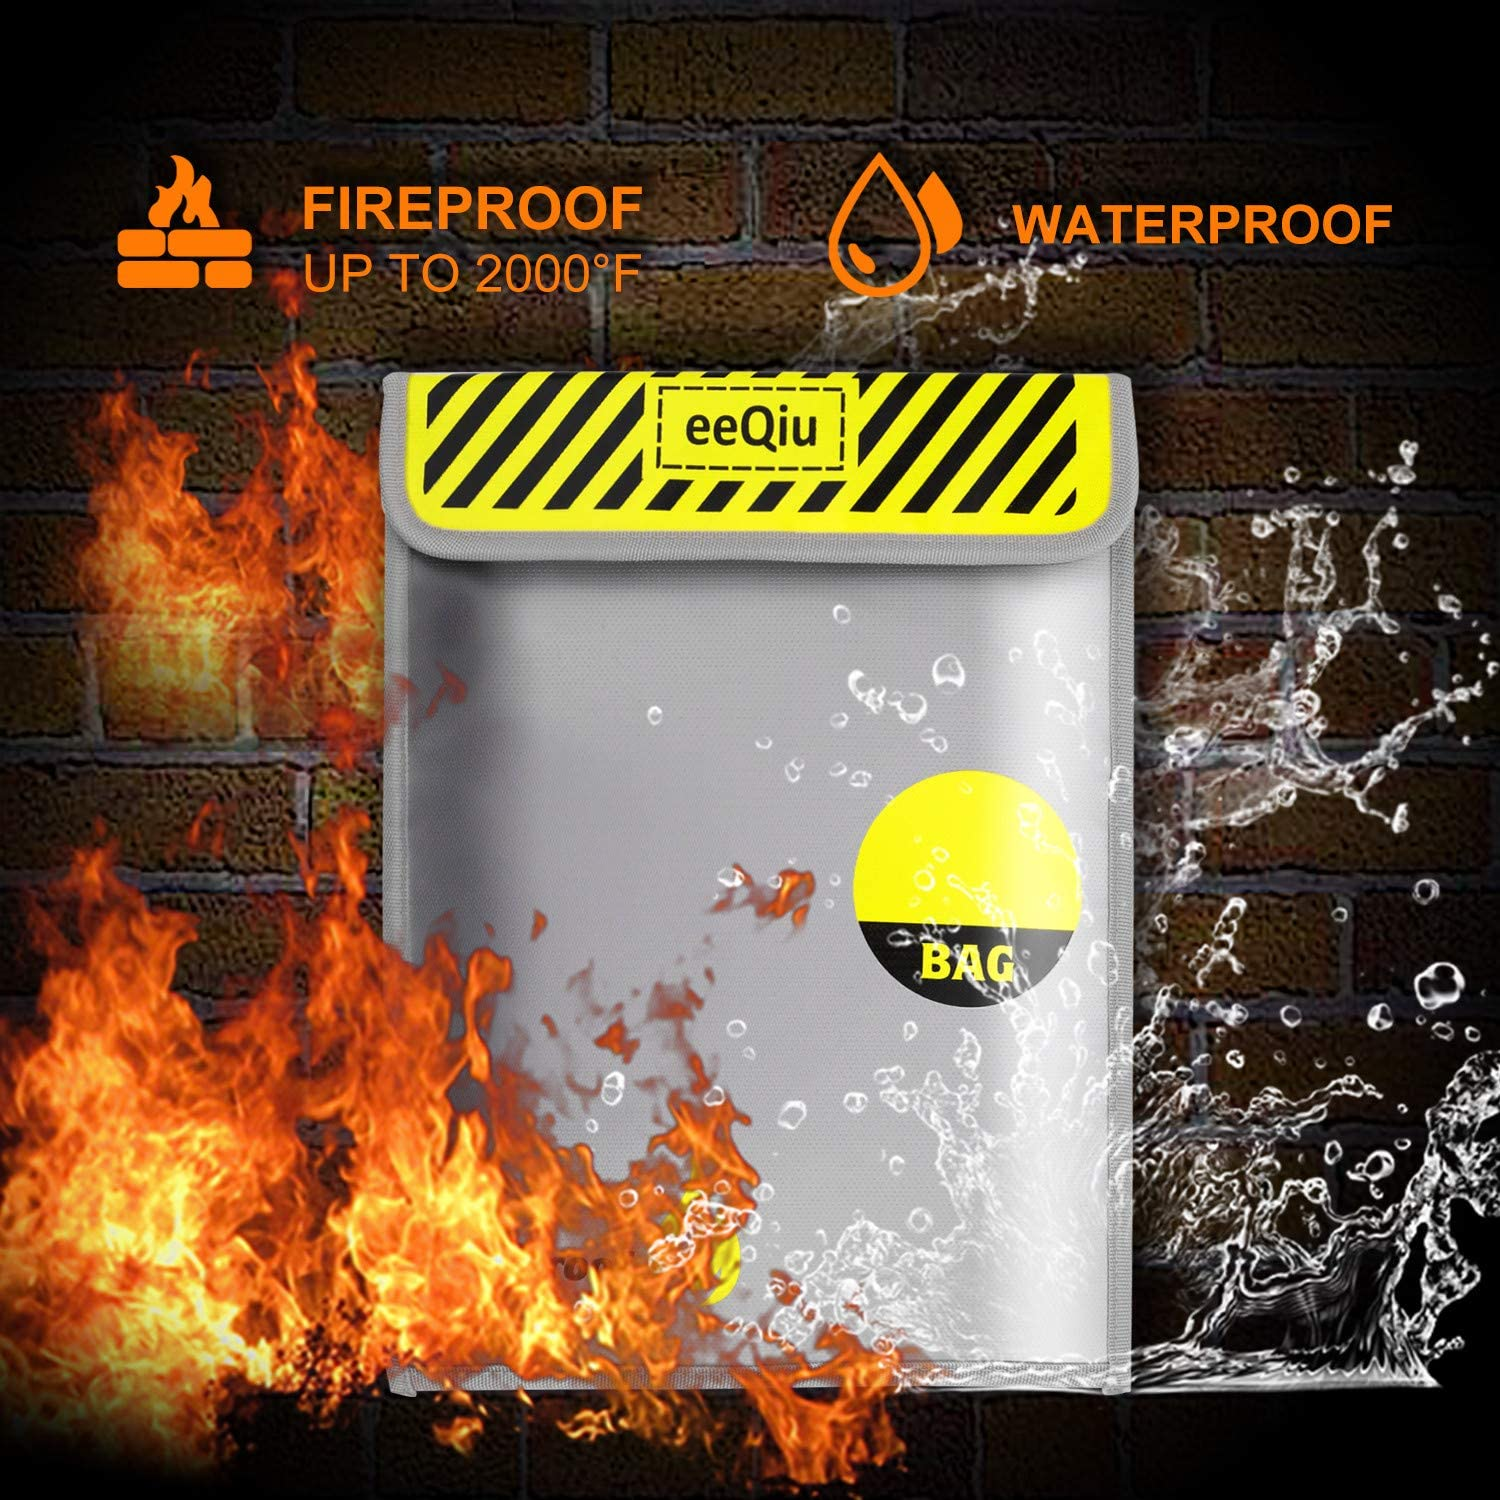 Non-Itchy Silicone Coated Fire Resistant Bag Fireproof Safe Storage for Money Jewelry and Passport with Fireproof Velcro Documents Fireproof Safe Bag eeQiu 15X11 Fireproof Money Bag